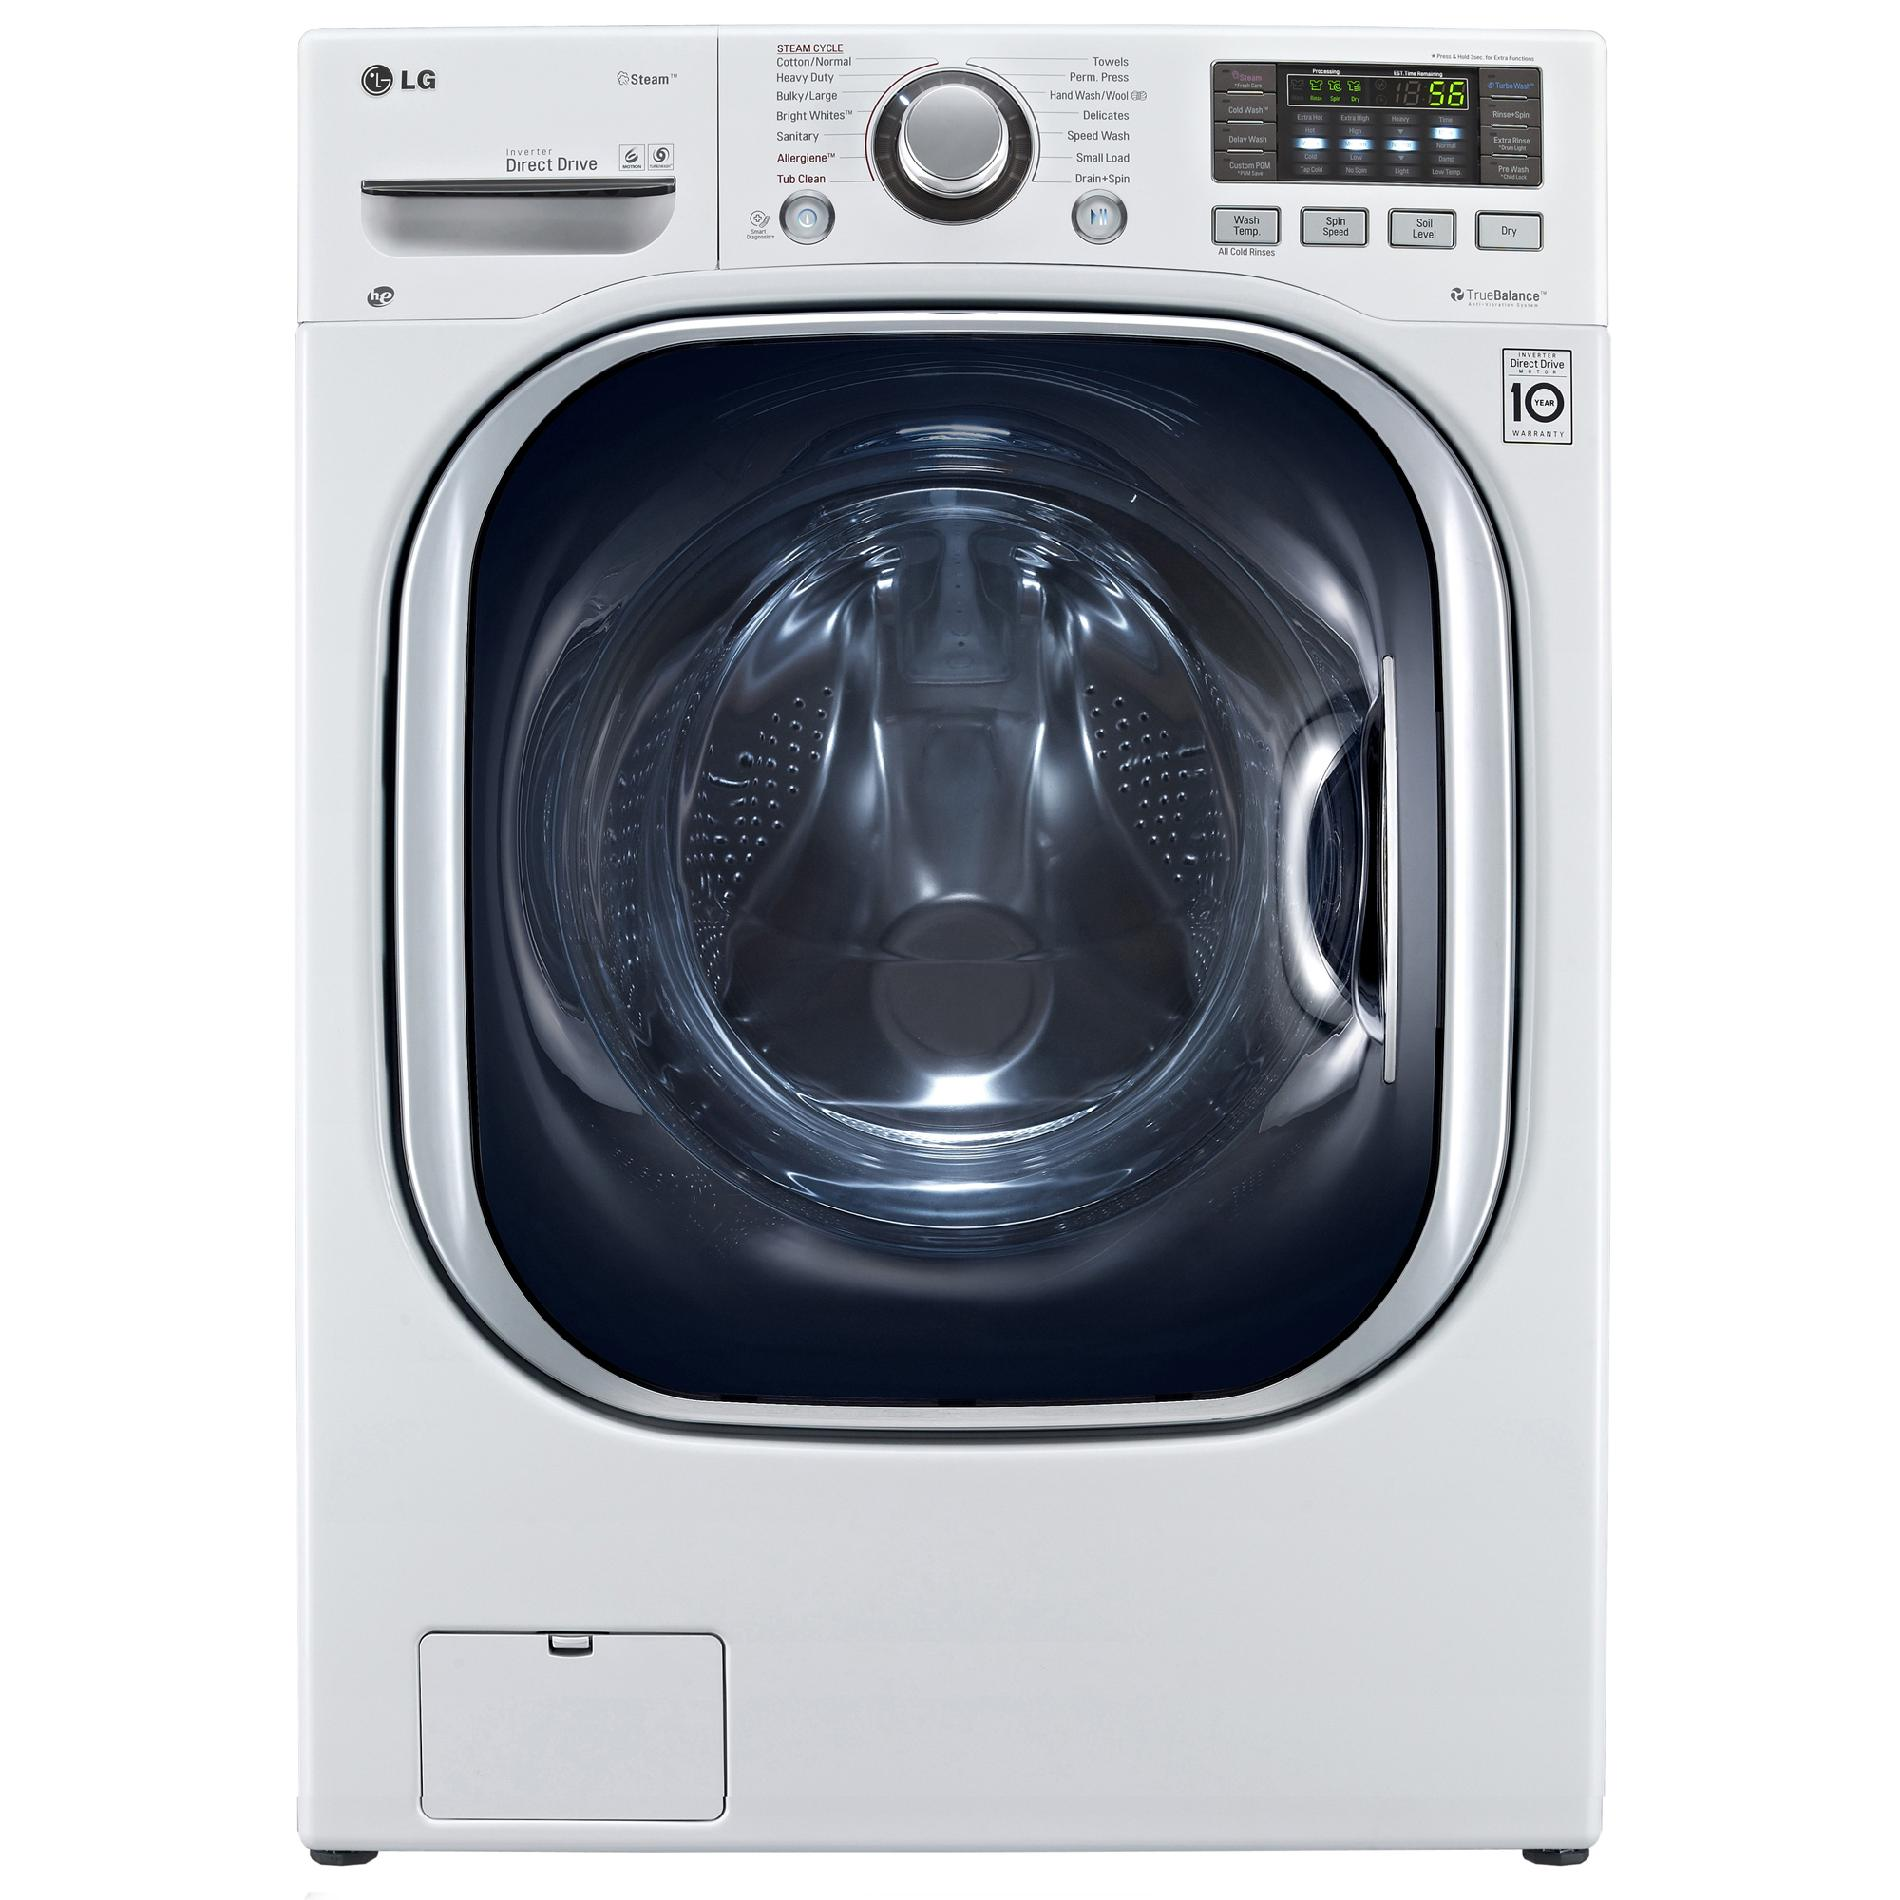 small resolution of  electric dryer i have a sears kenmore electric dryer model 110 on kenmore sears kenmore electric dryer wiring diagram